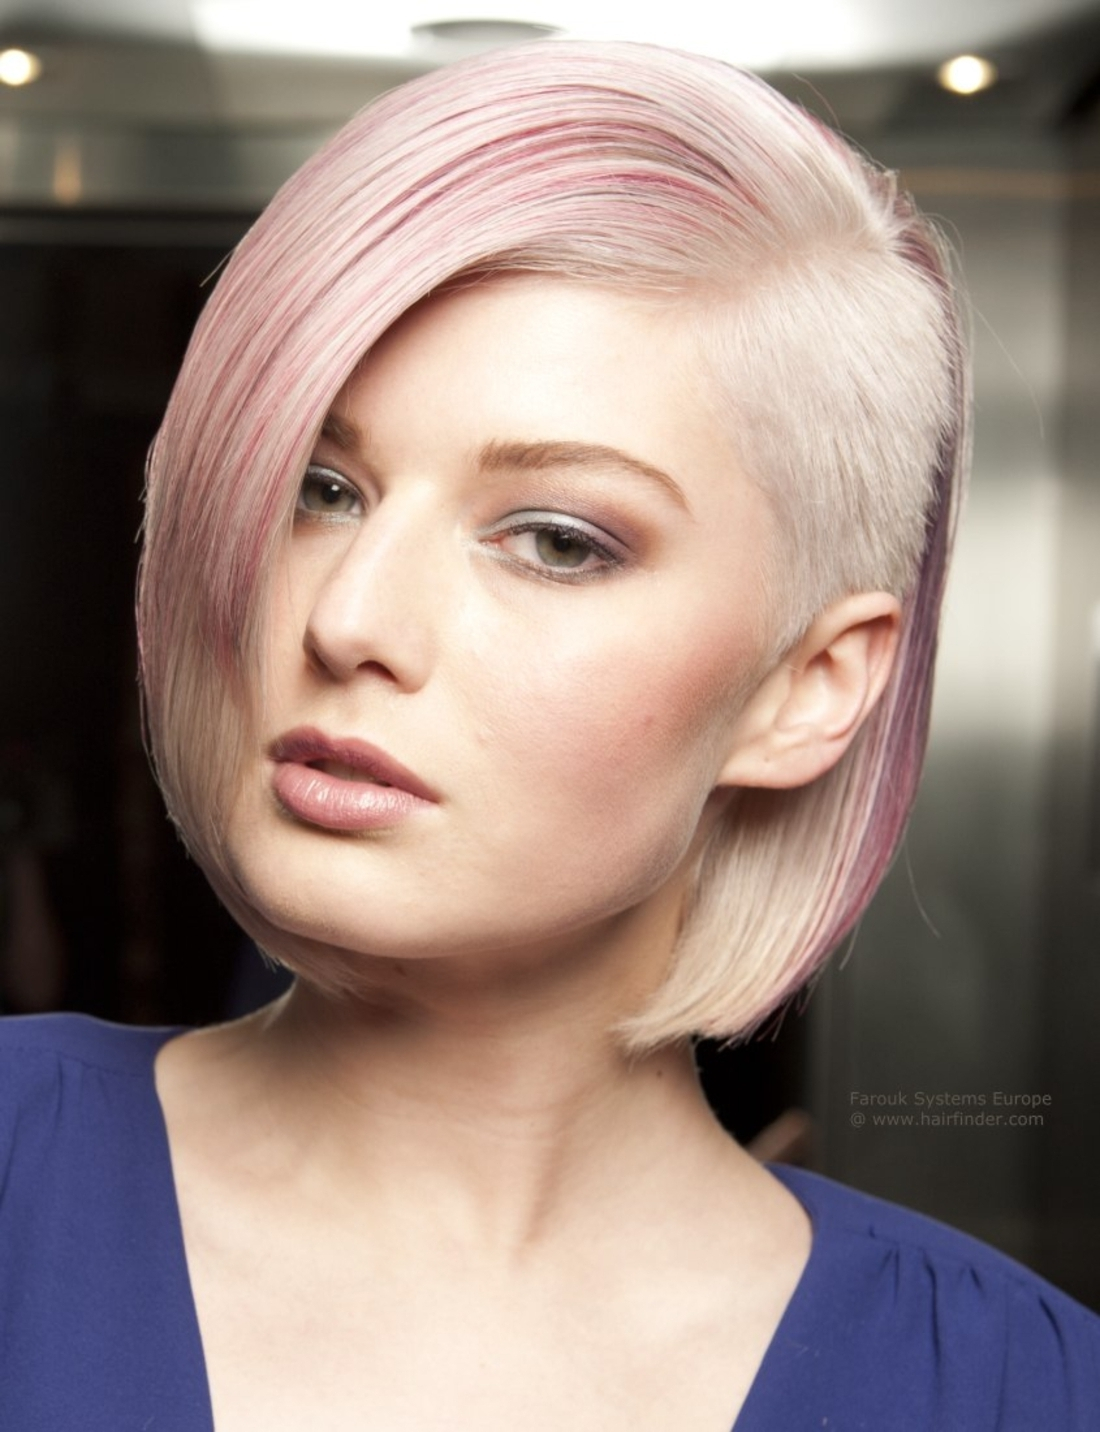 Undercut Women A Modern Hairstyle For A Fancy Look